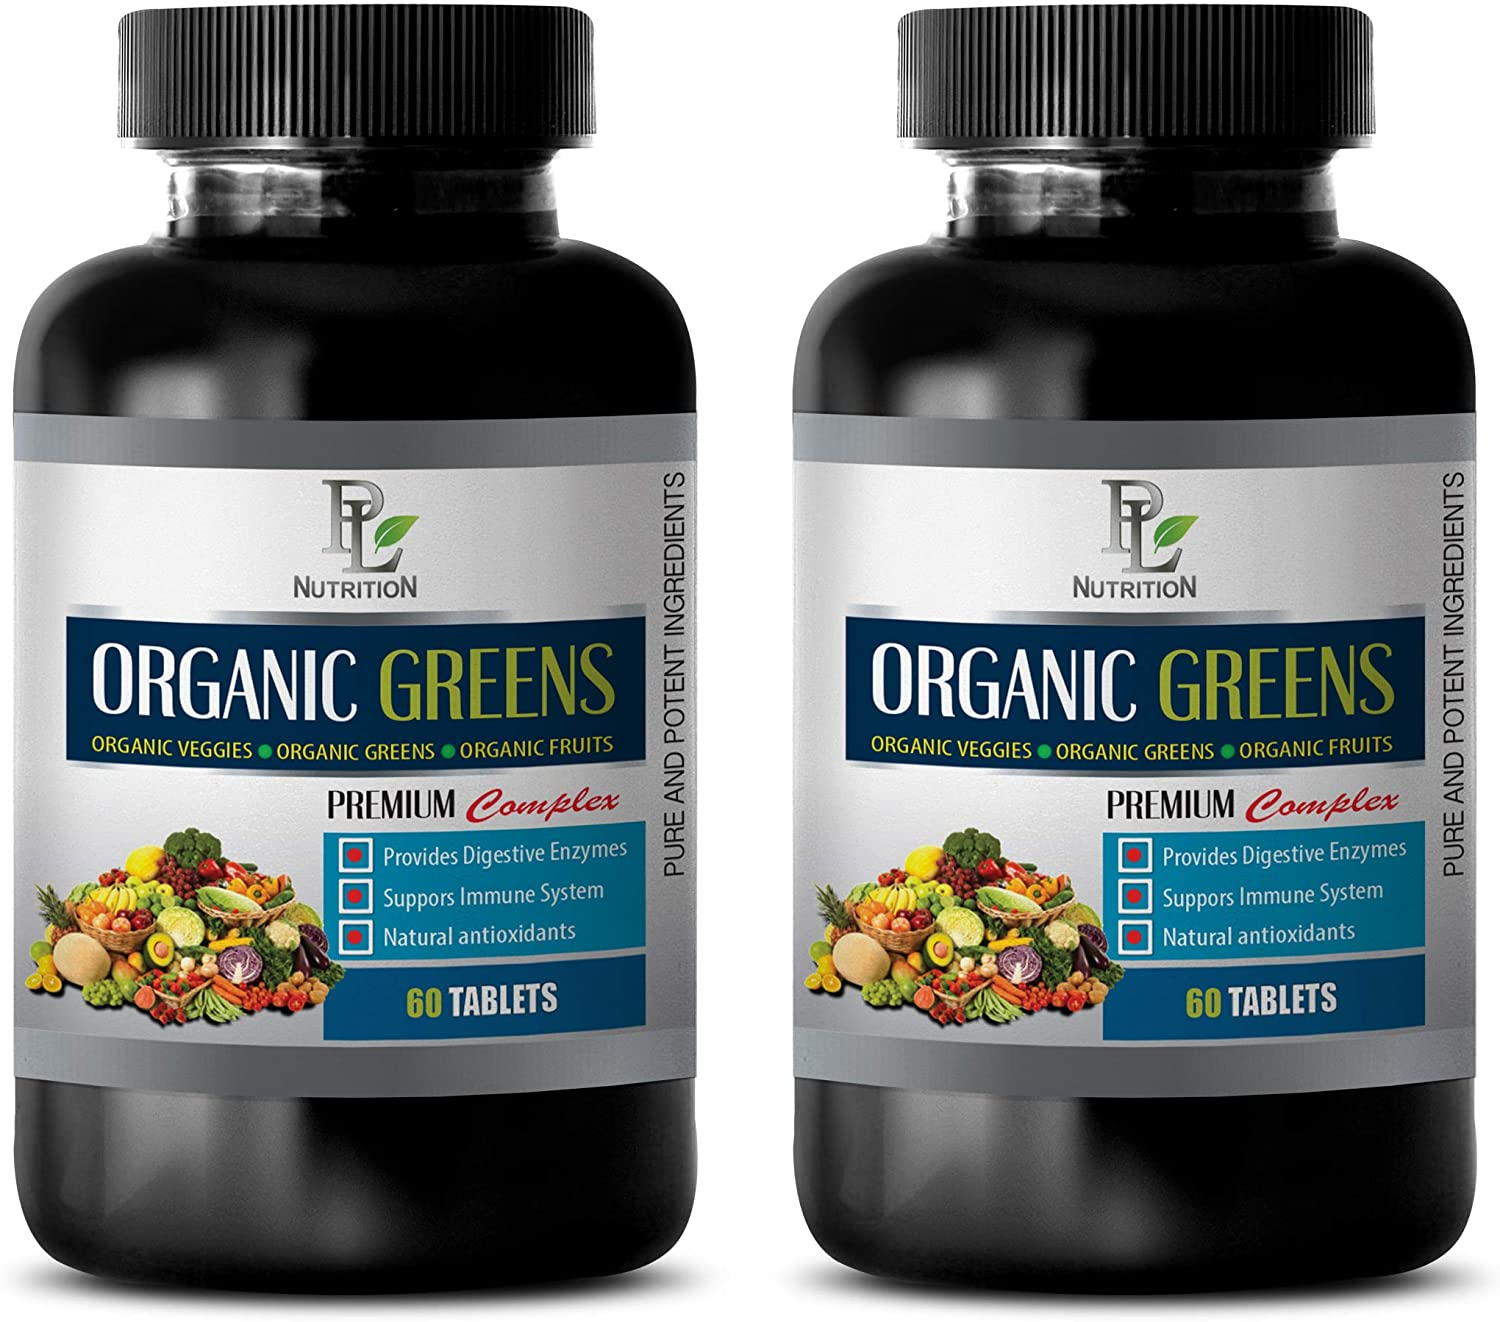 Heart Health multivitamin - Greens Premium Organic Complex - Strawberry Extract Natural - 2 Bottles 120 Tablets